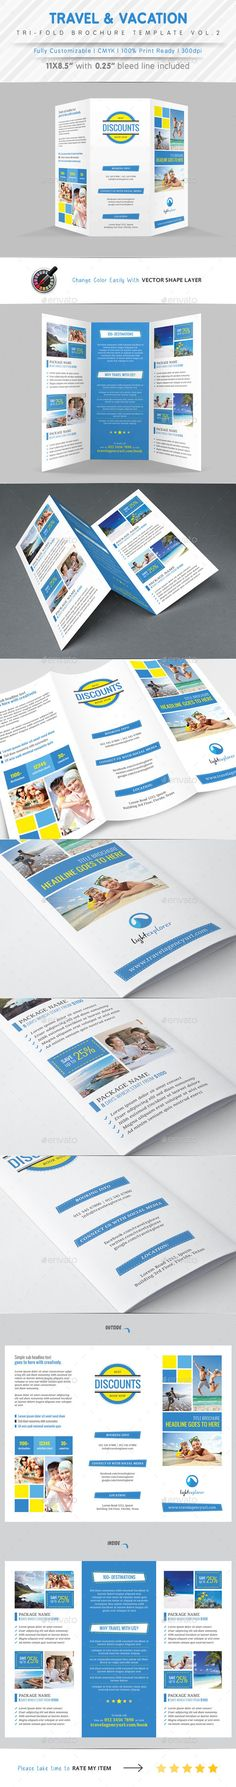 Cruise Travel Brochure Illustrator Template by @StockLayouts - sample travel brochure